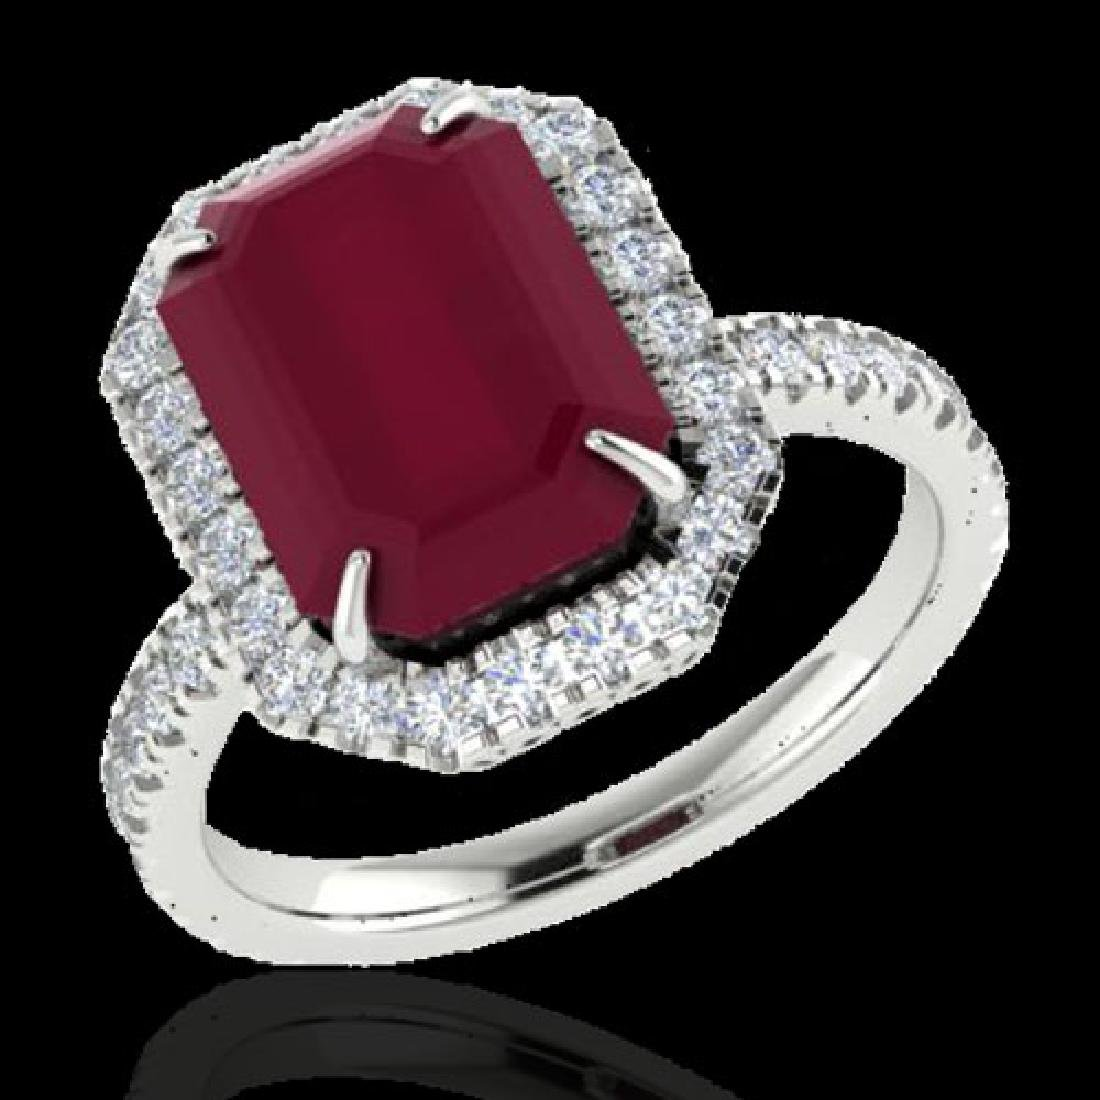 5.33 CTW Ruby And Micro Pave VS/SI Diamond Halo Ring - 2